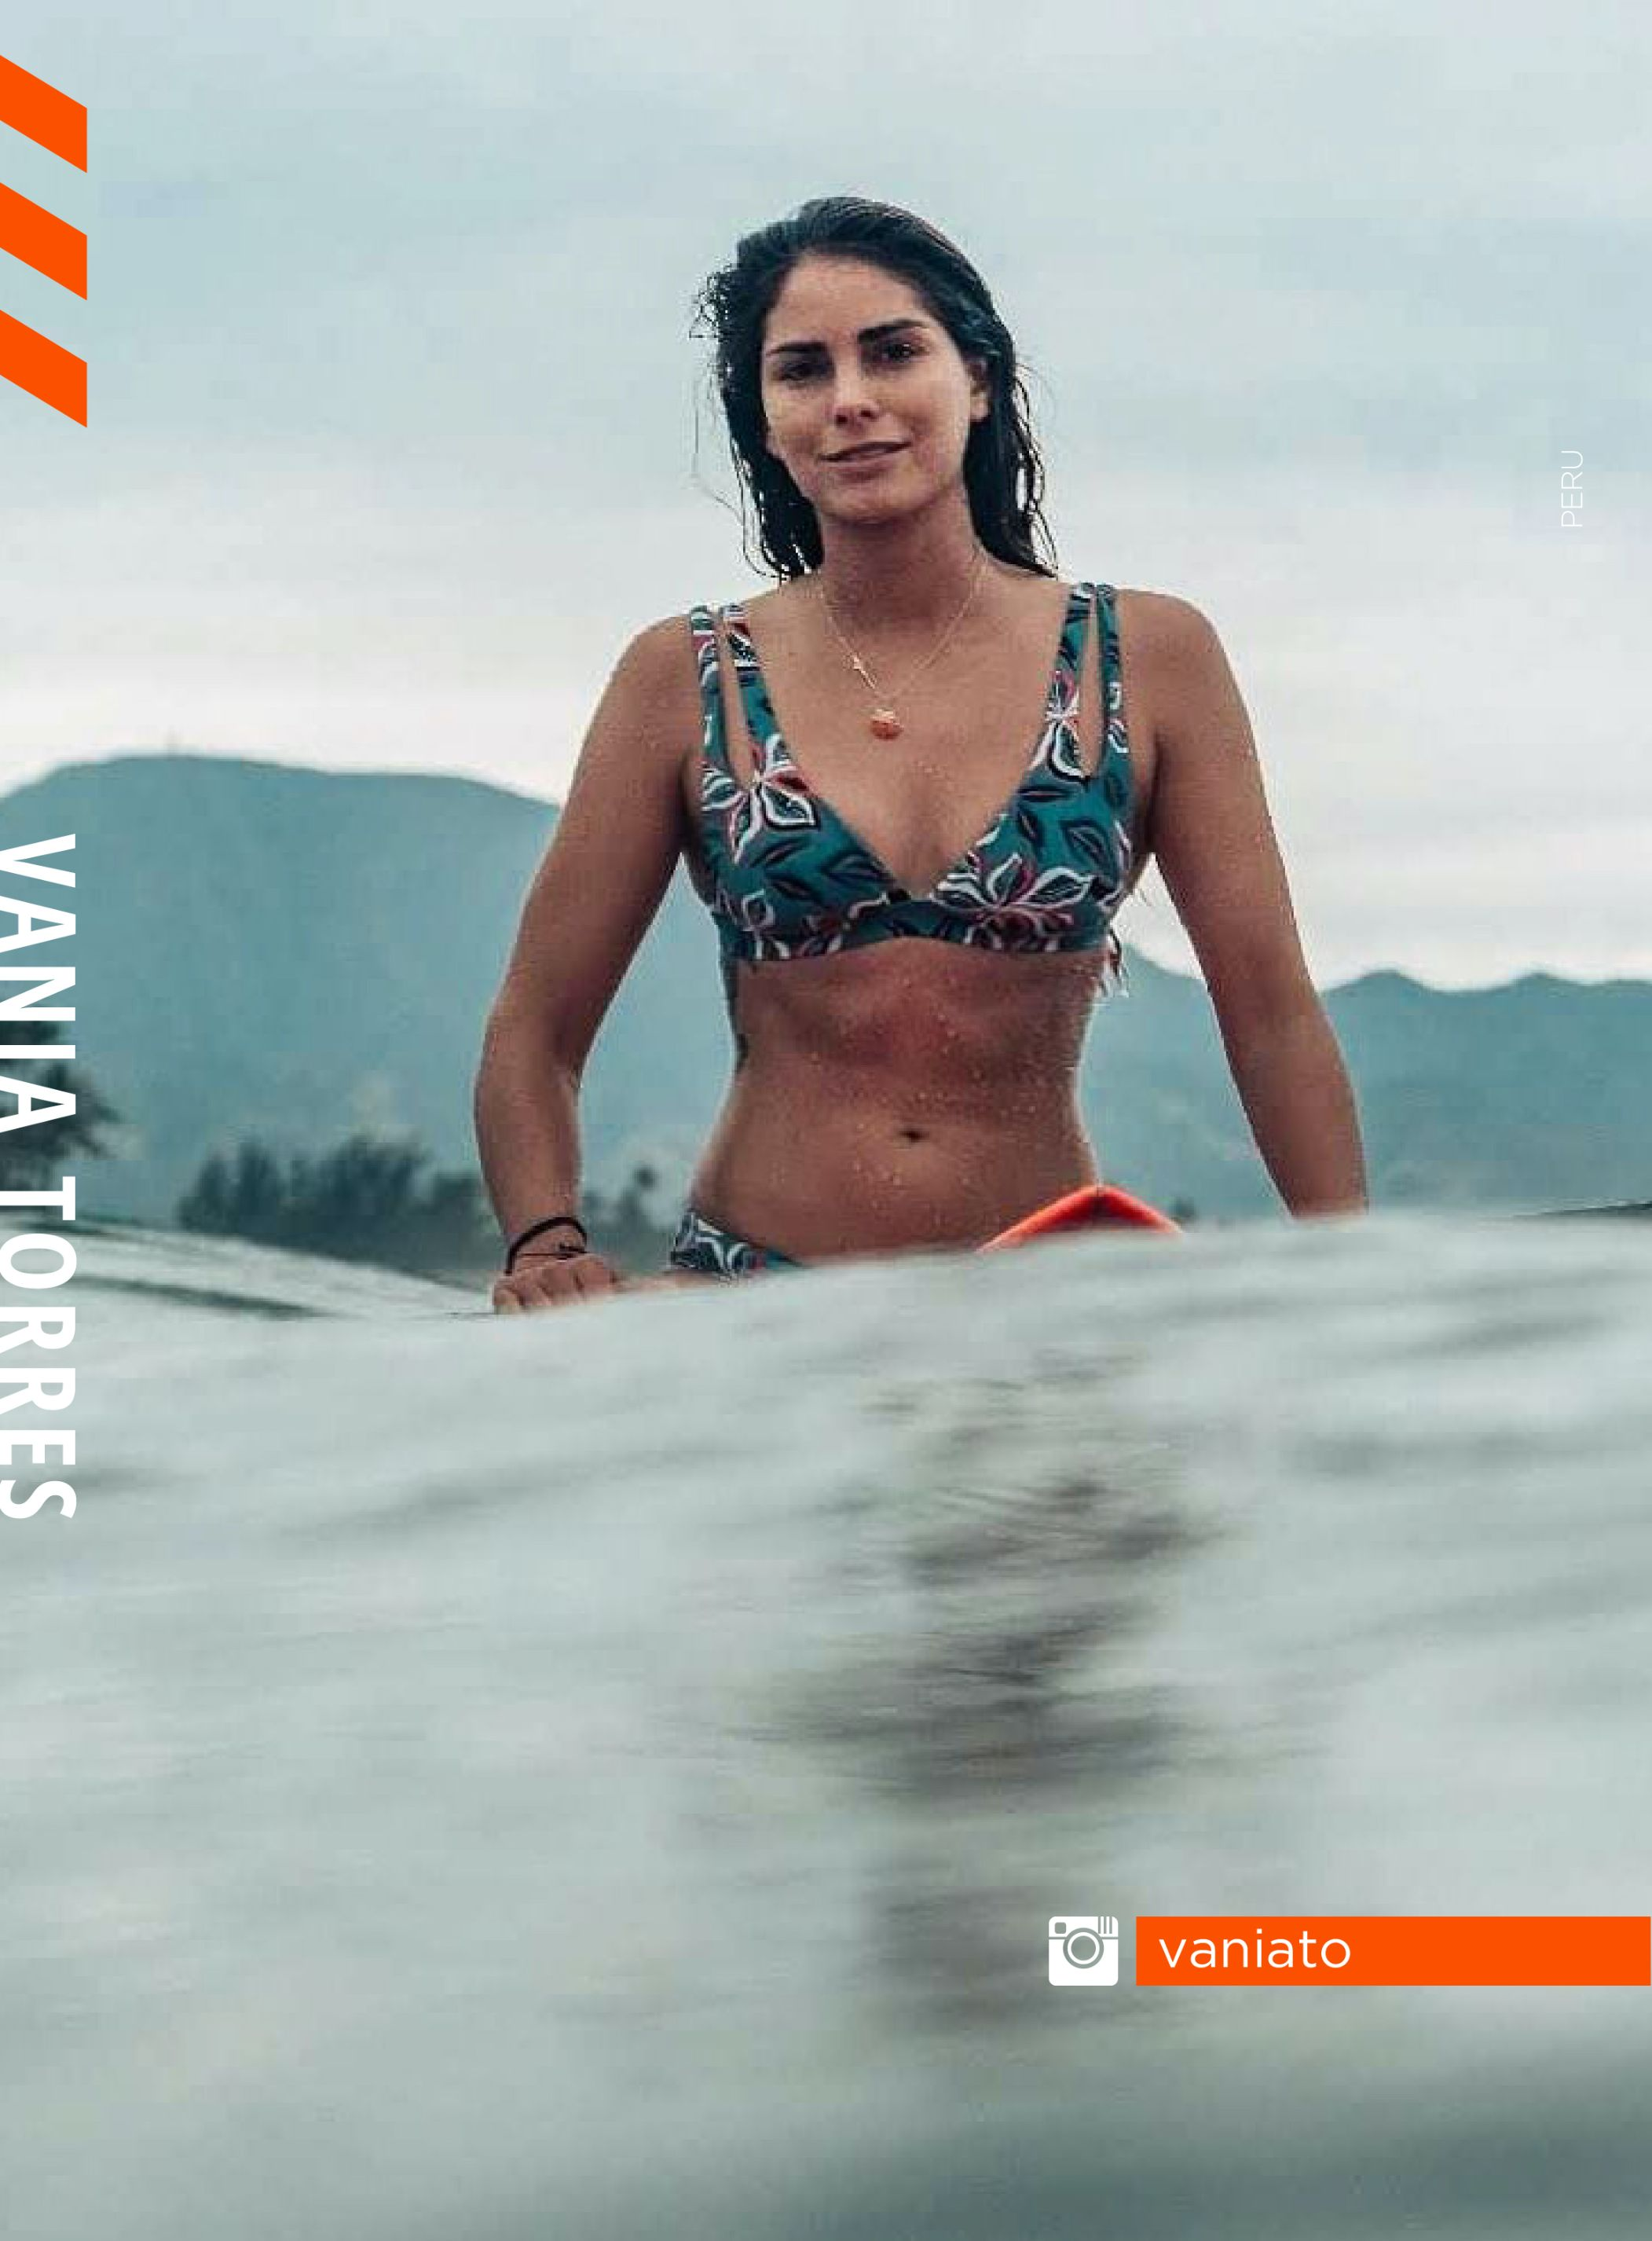 Member of the Infinity Surfboard team VANIA TORRES